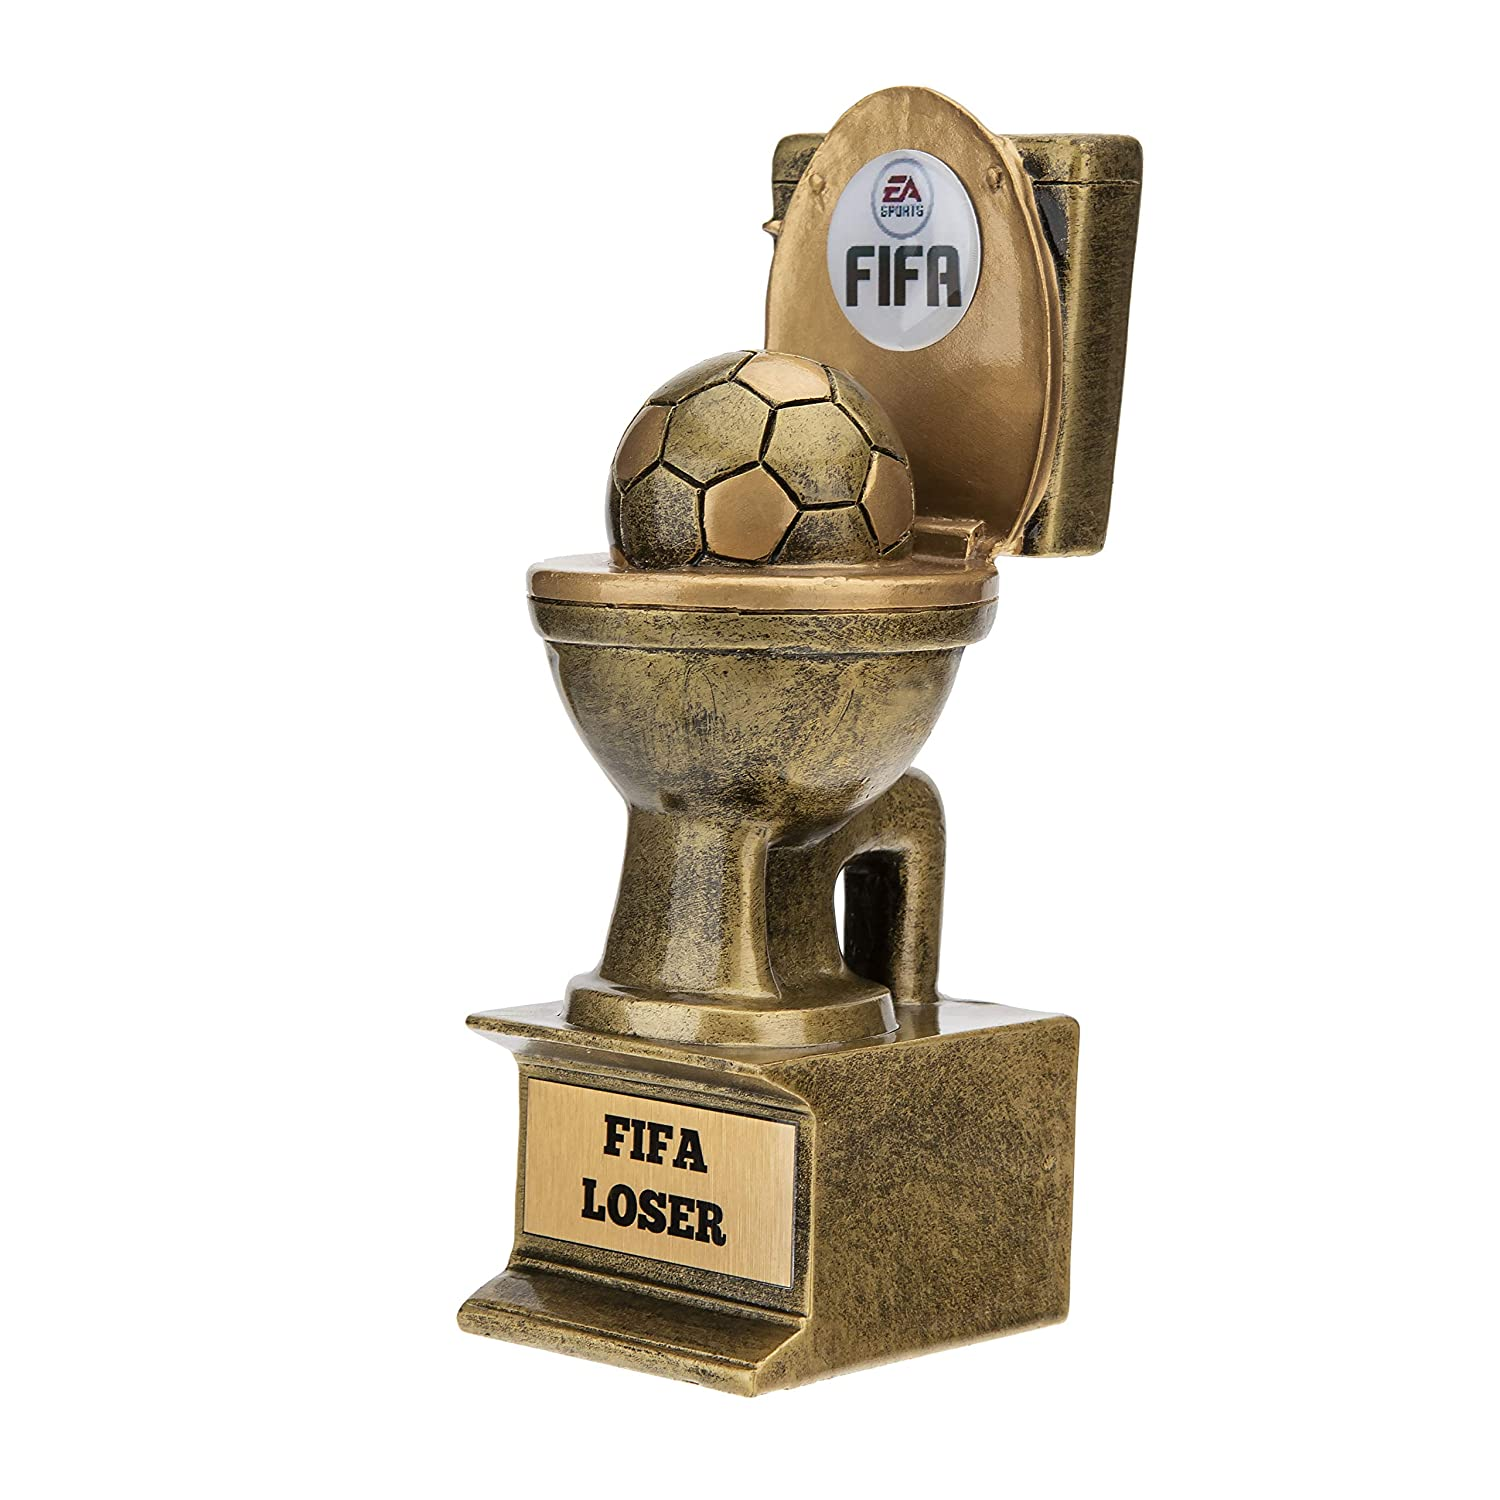 Another angle of the FIFA Loser trophy. Credit: Amazon